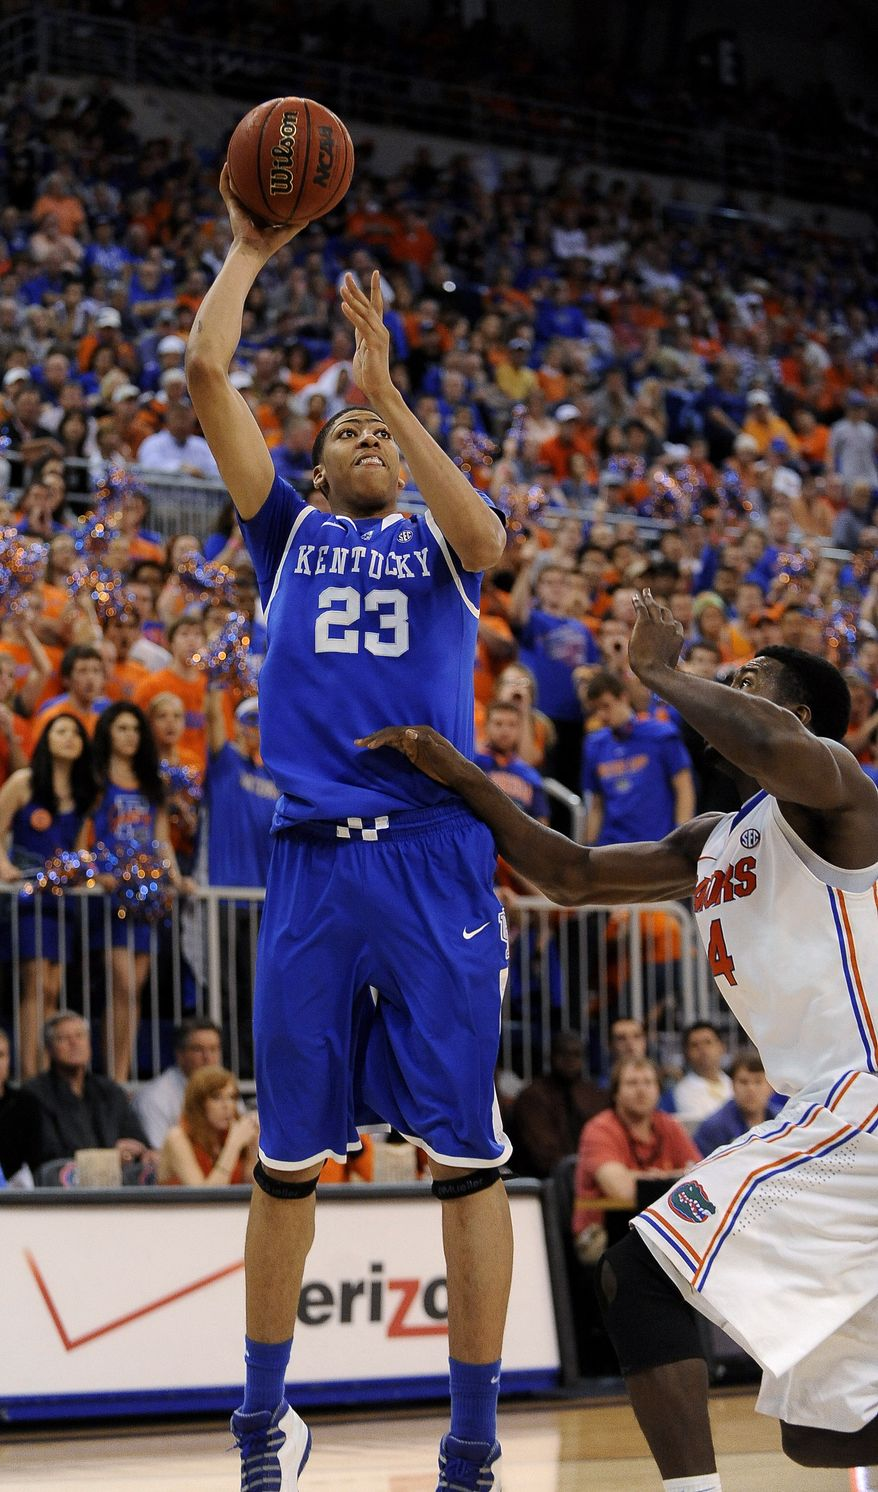 Kentucky freshman Anthony Davis is averaging 14.4 points, 9.8 rebounds and 4.7 blocks per game. AP Photo/Phil Sandlin)